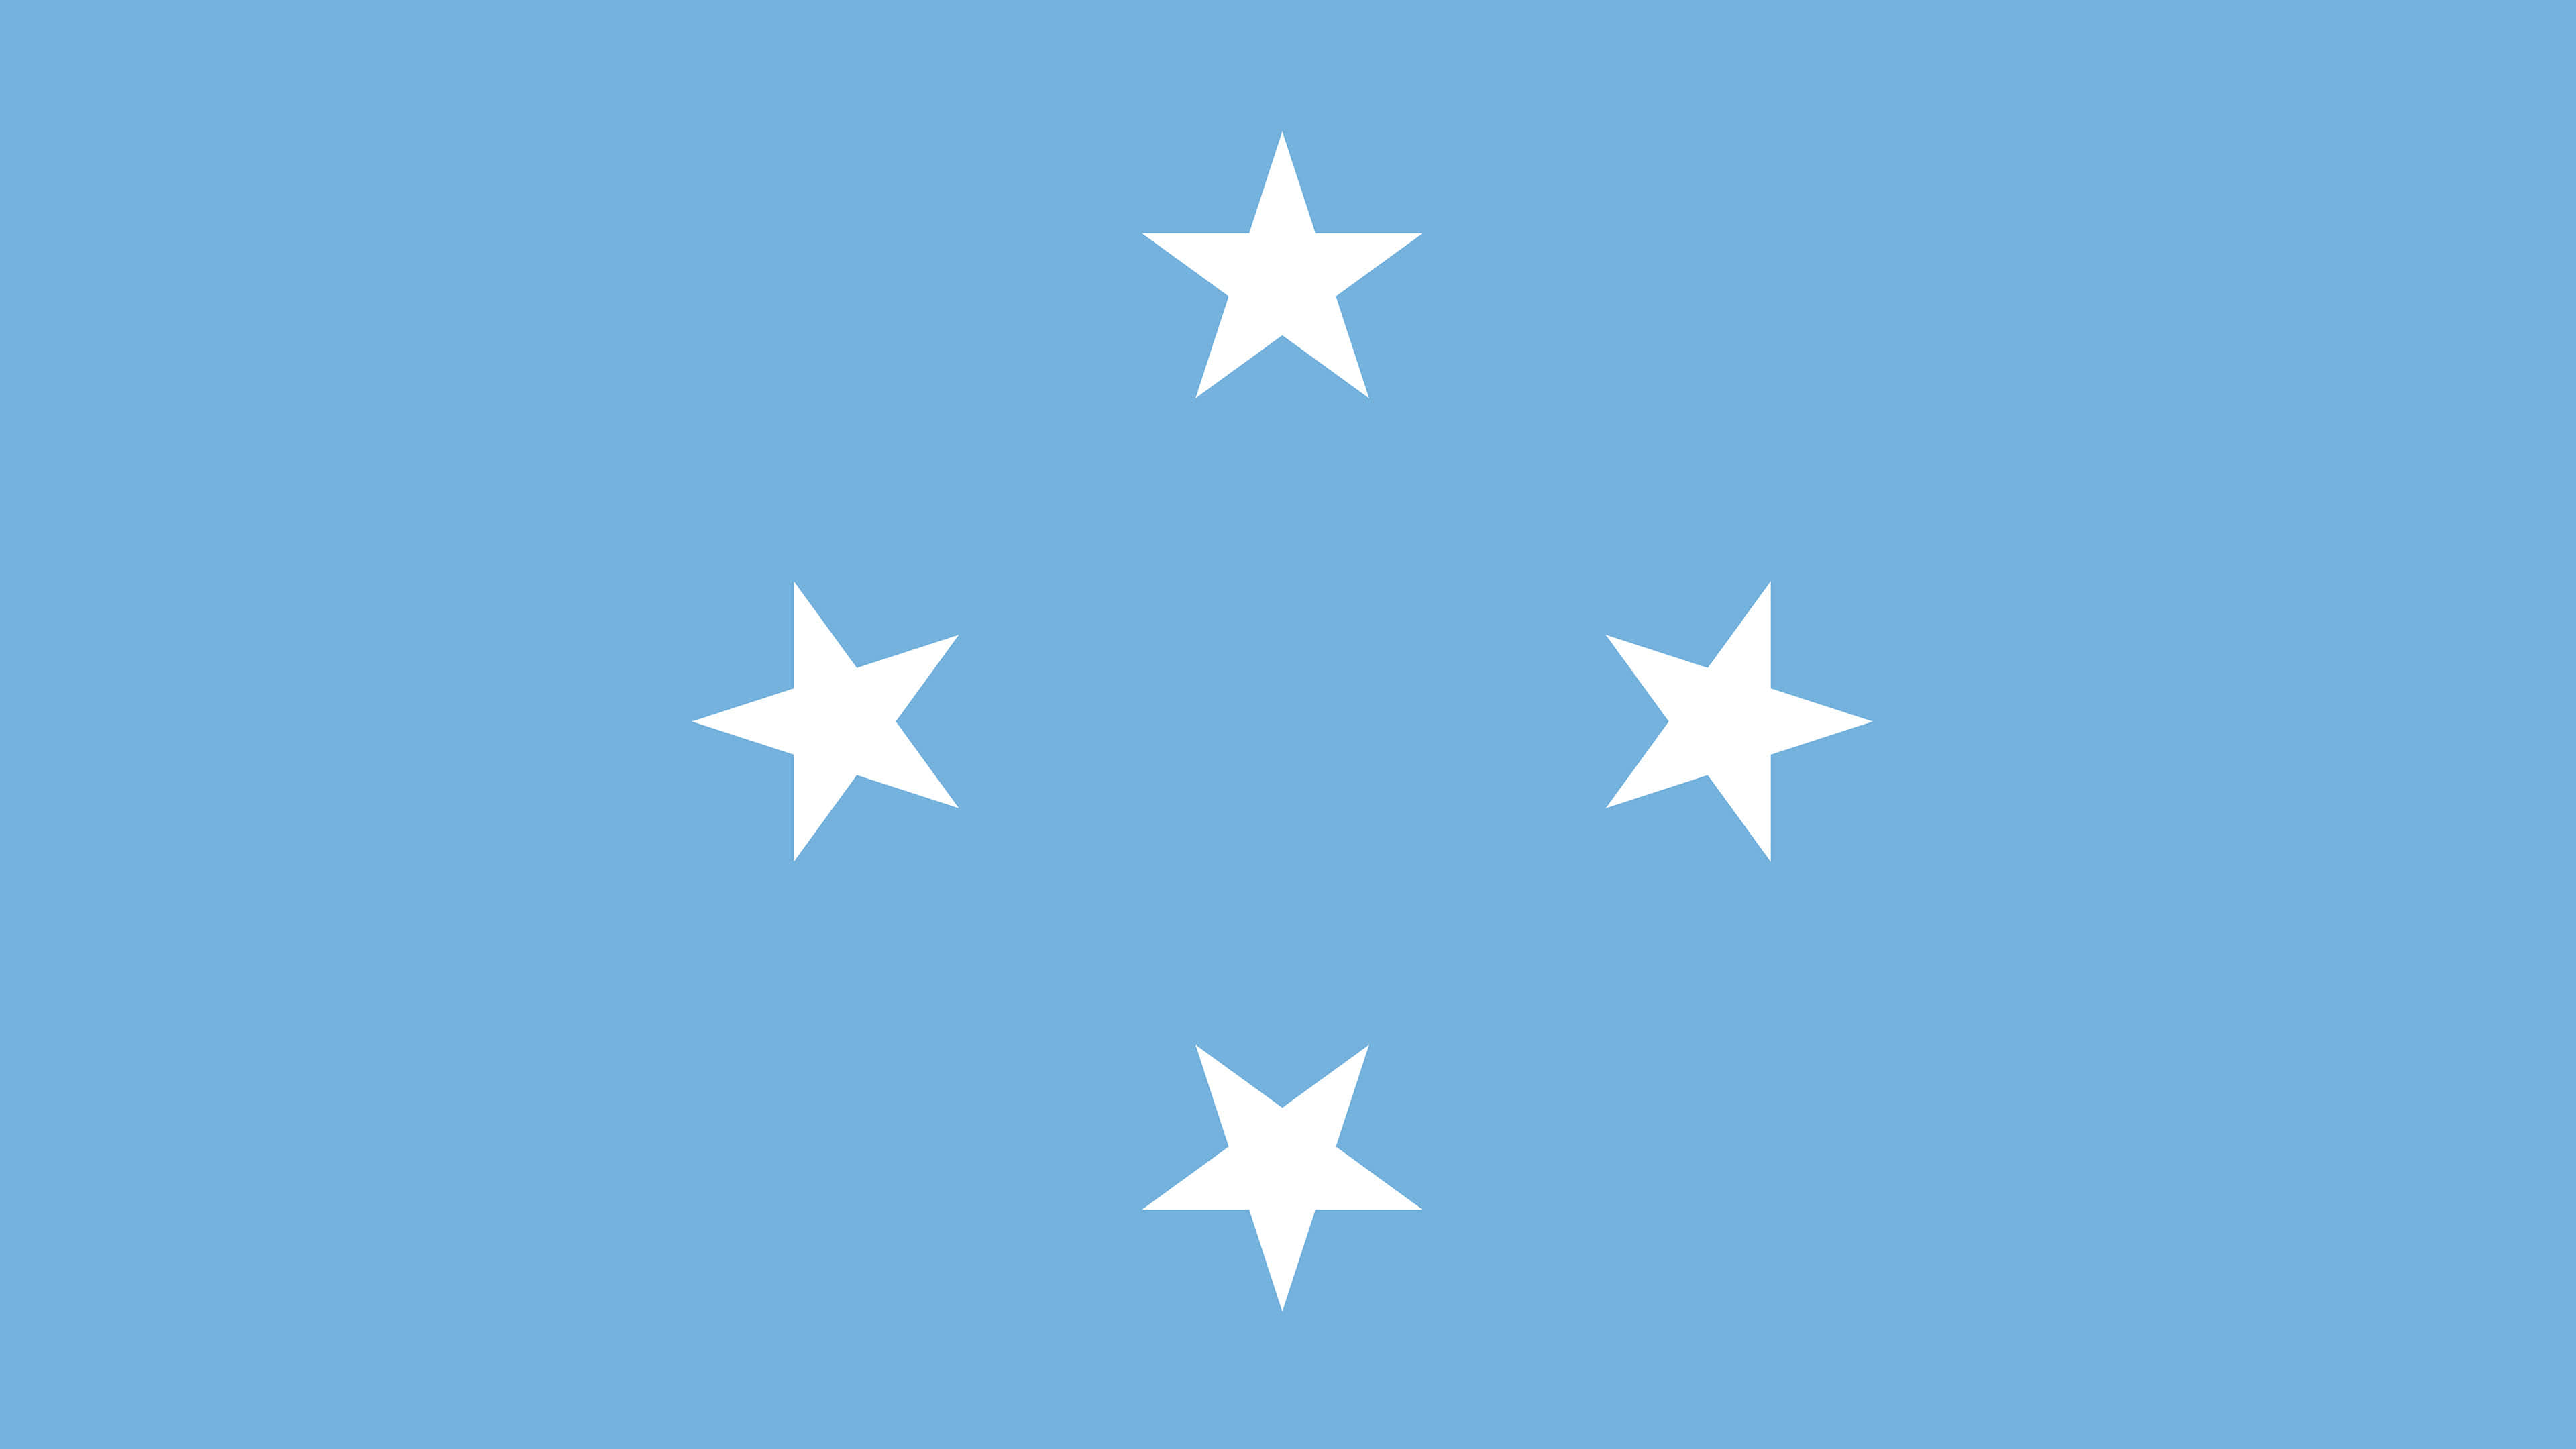 Federated States Of Micronesia Flag UHD 4K Wallpaper Pixelz 3840x2160